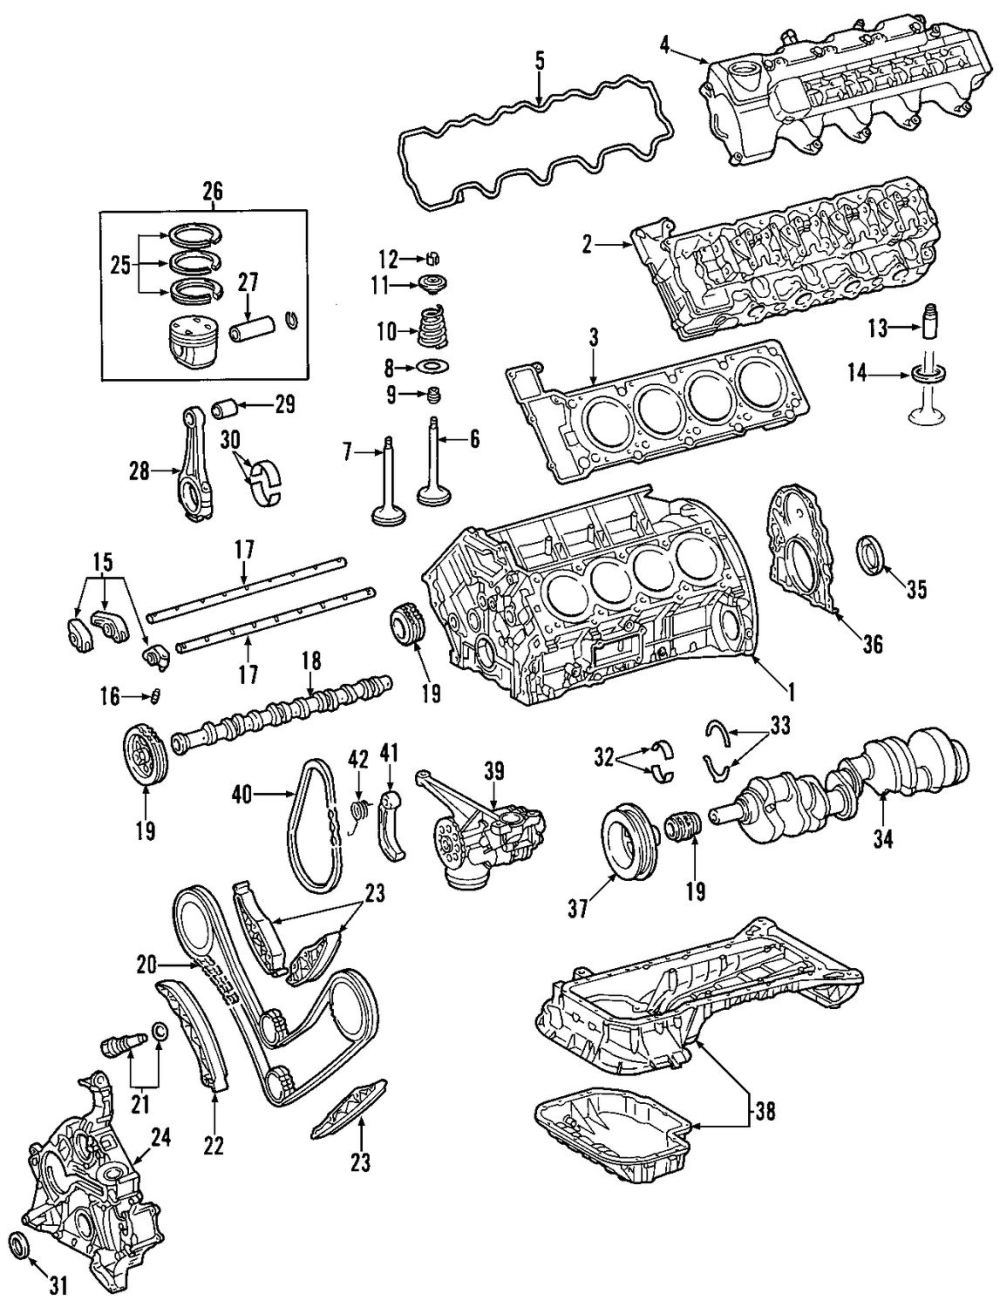 medium resolution of buy crankshaft and bearings parts for mercedes benz g55 amg vehicle mercedes benz sprinter parts diagram mercedes benz parts diagrams